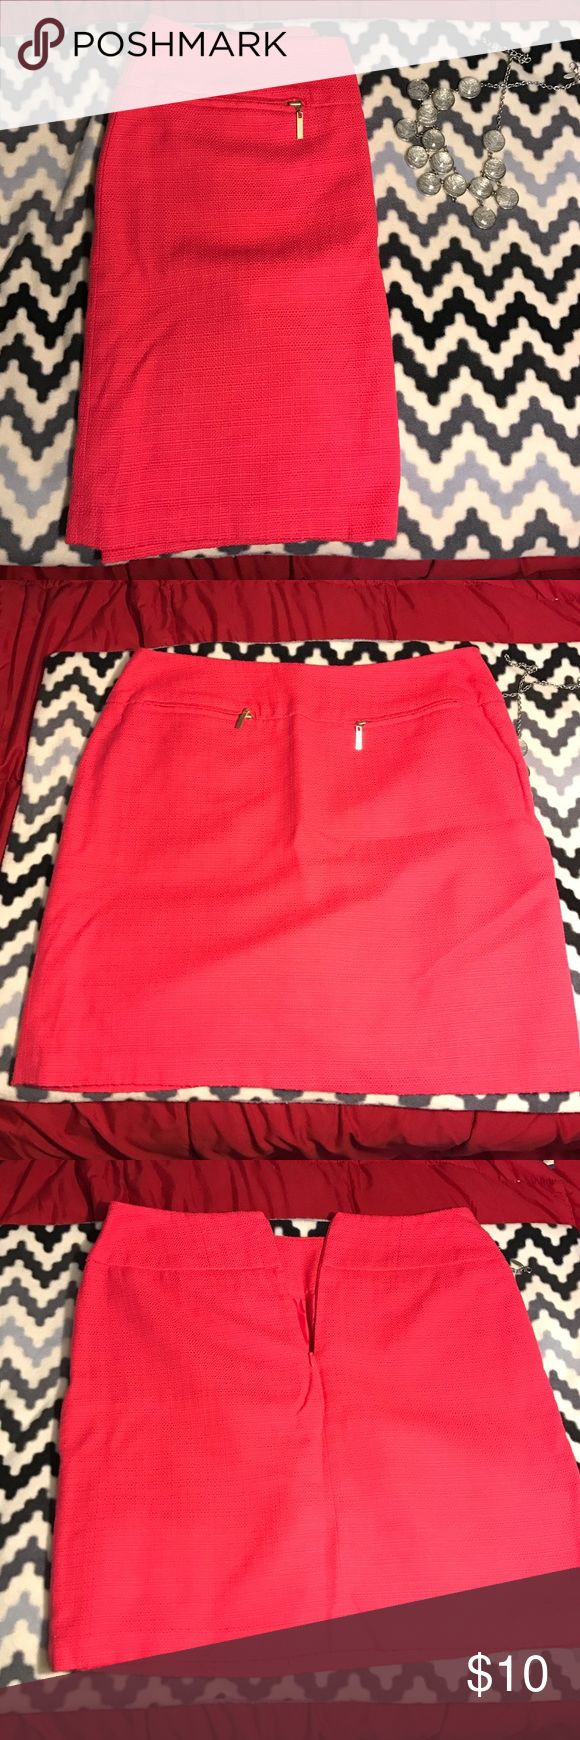 Pink Skirt Perfect for the office! Cotton and polyester outer shell with a polyester liner. Great condition! Fits like a standard 10-12 East 5th Skirts Pencil